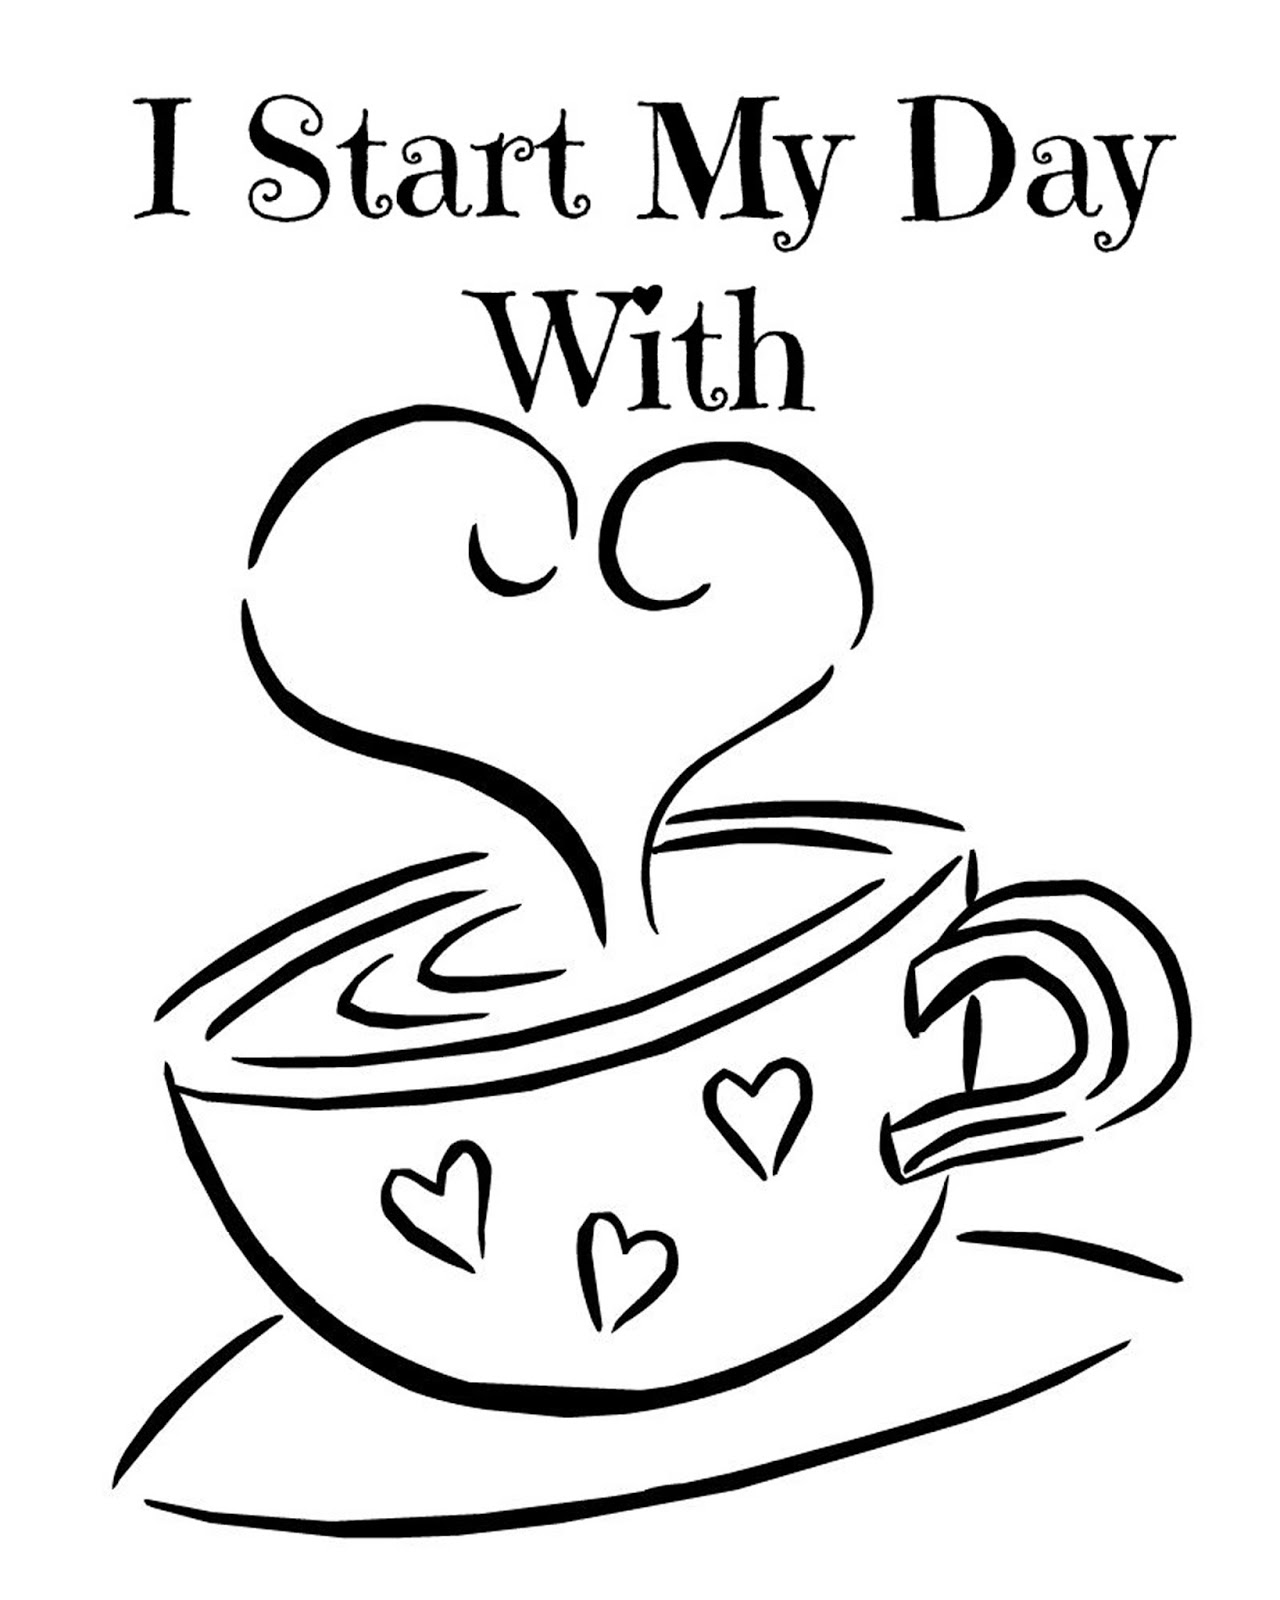 picture relating to Printable Kitchen Art identified as CJO Picture: Printable Kitchen area Artwork 8x10: I Commence My Working day With